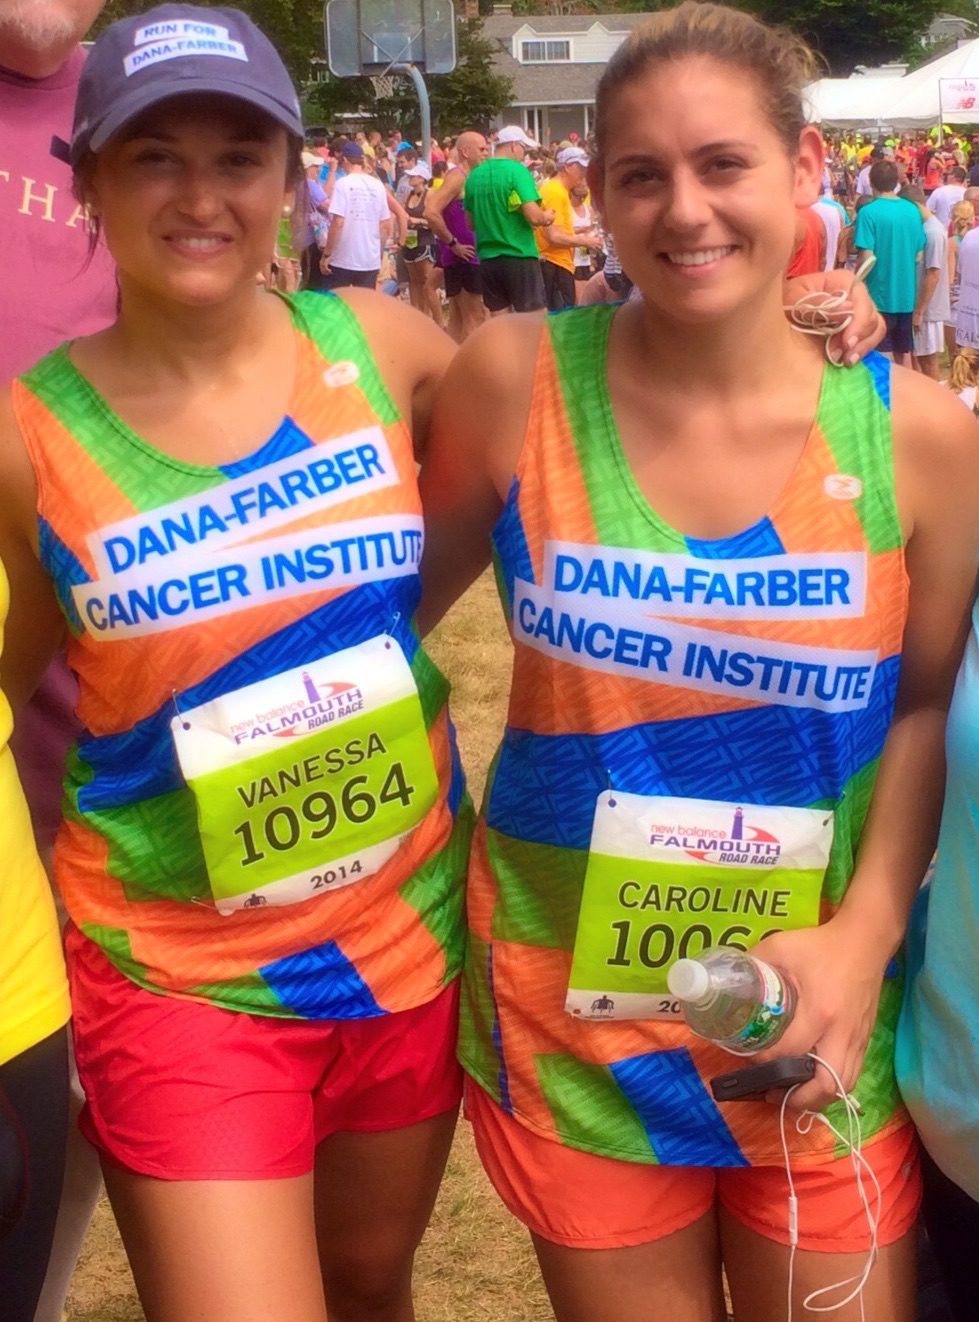 Vanessa Marcotte (left) and cousin Caroline Tocci (right) after the Falmouth Road Race in August 2014.